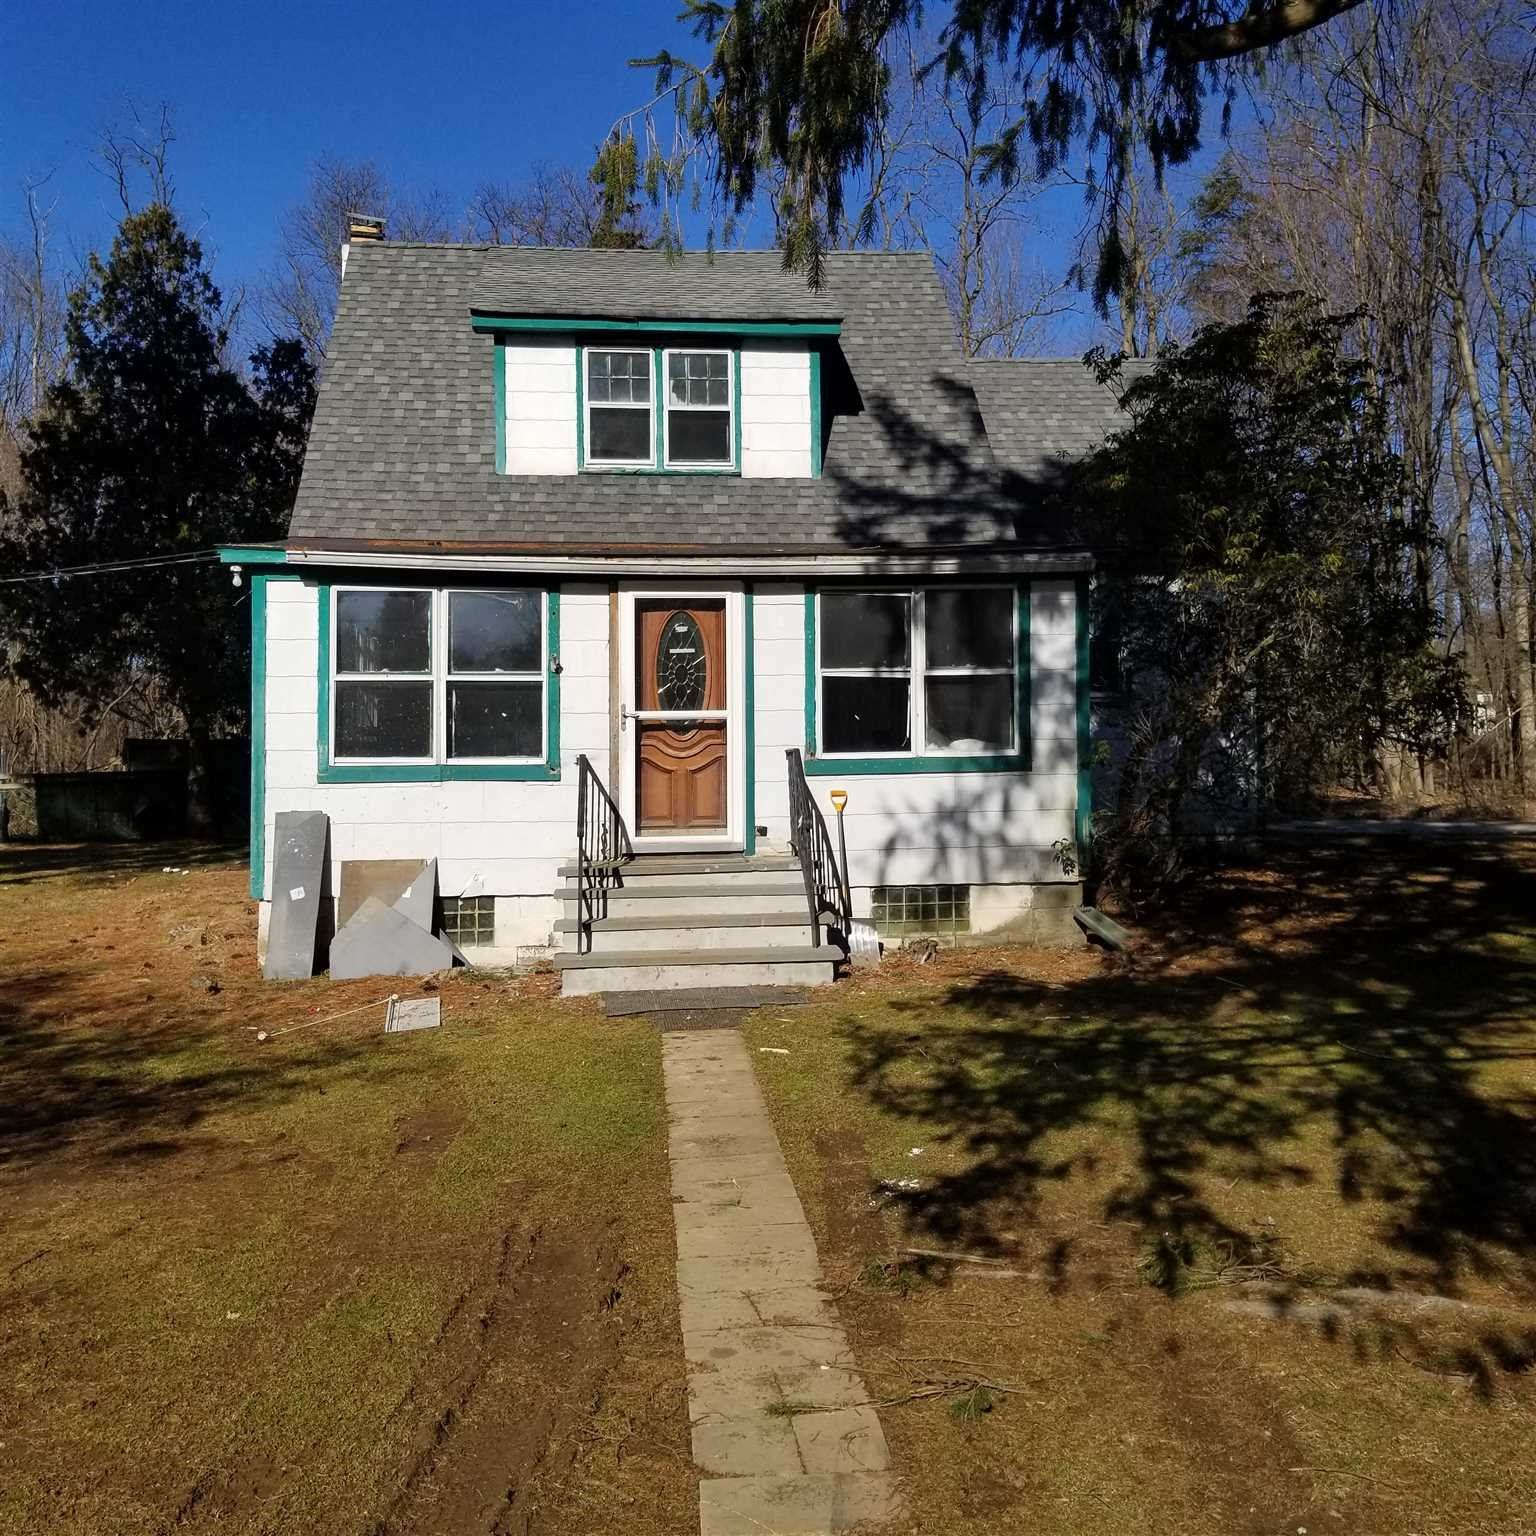 463 ROUTE 82, East Fishkill, NY 12533 - #: 399198